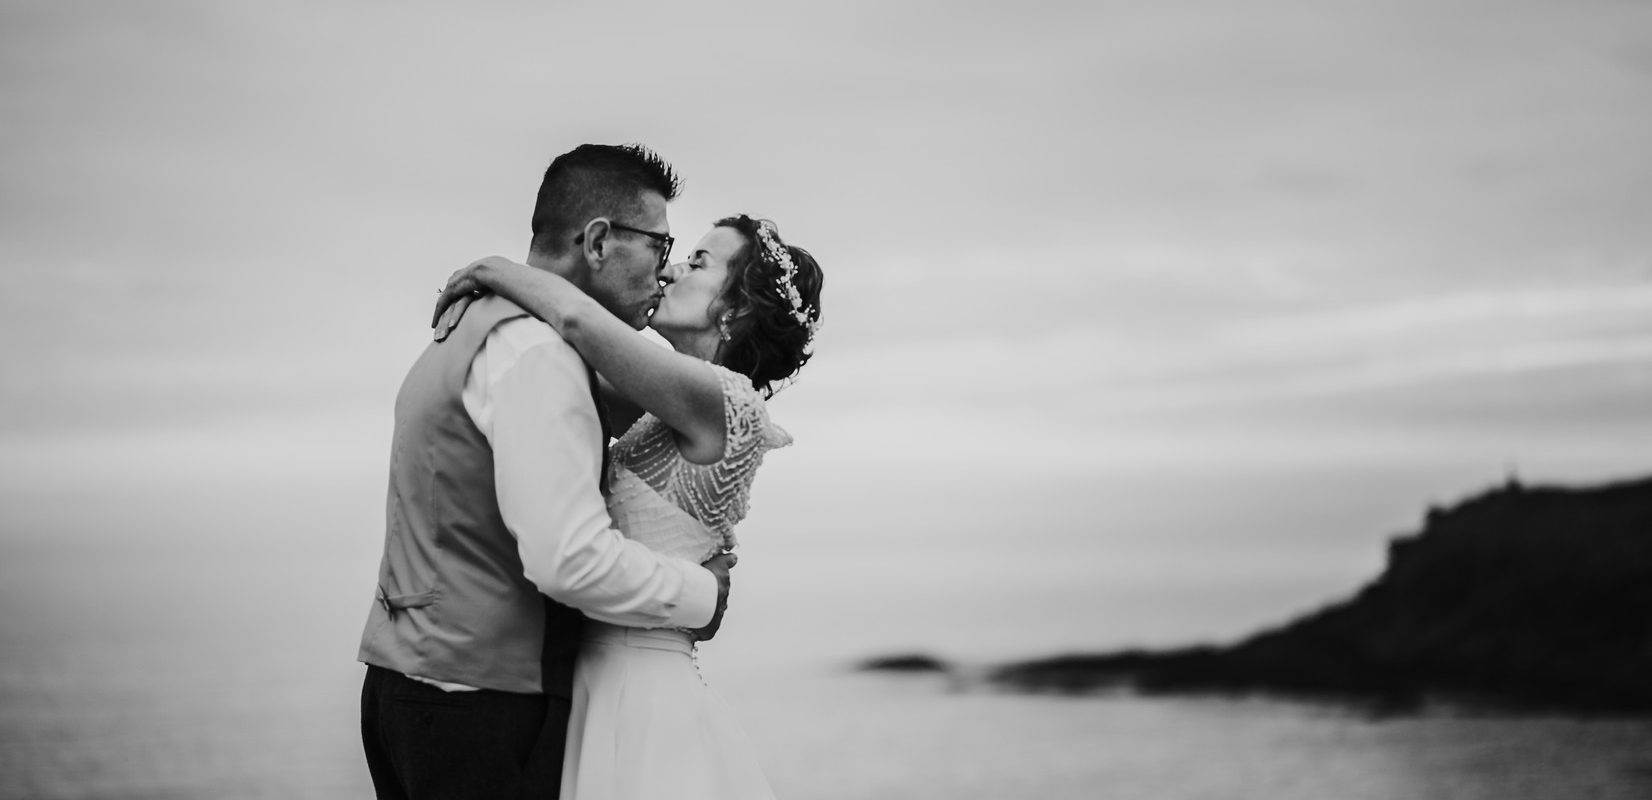 Jeanne and Ian's Wedding at Porth-an-Ells